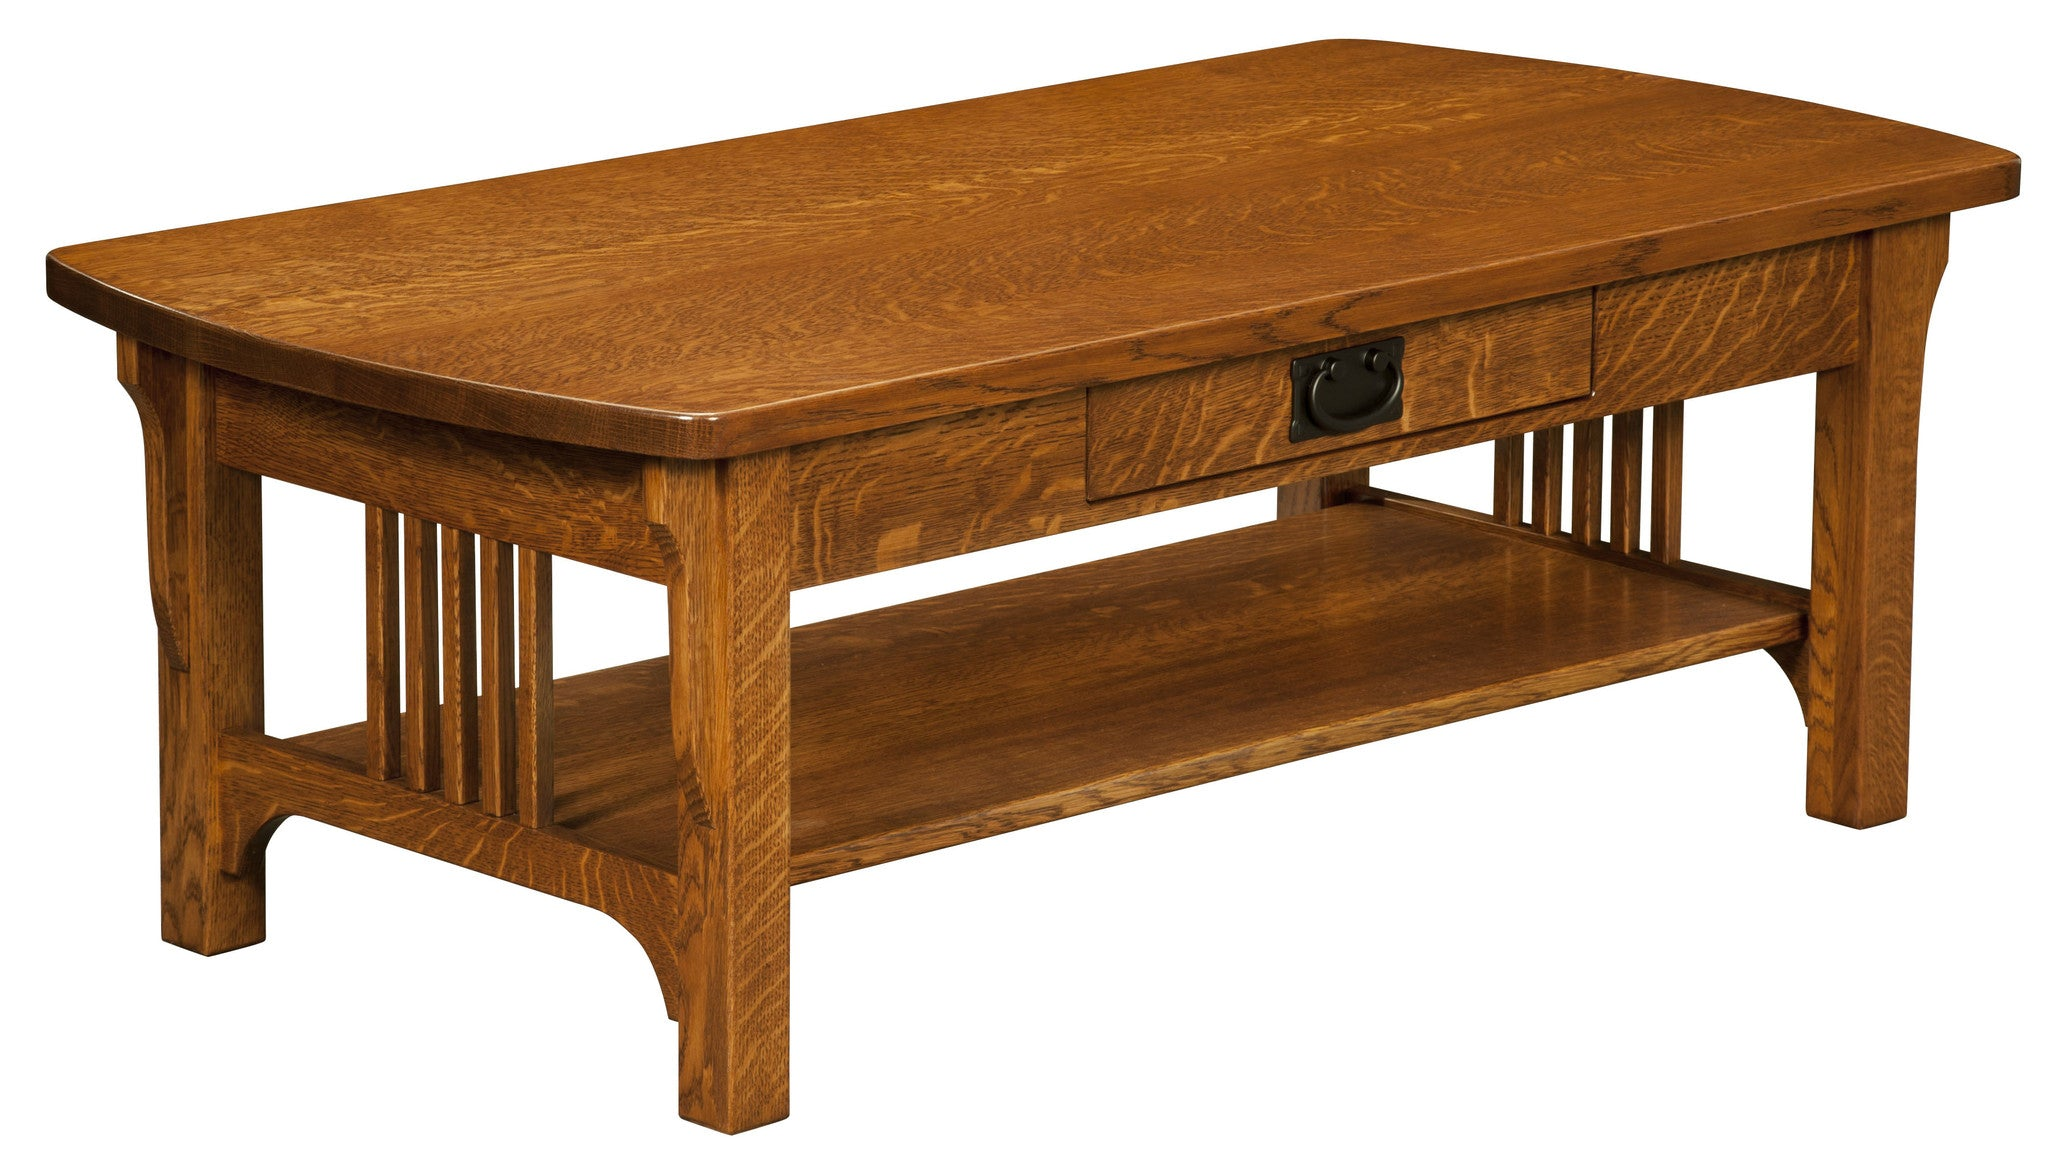 Craftsman Mission Coffee Table Open – Plain and Simple Furniture